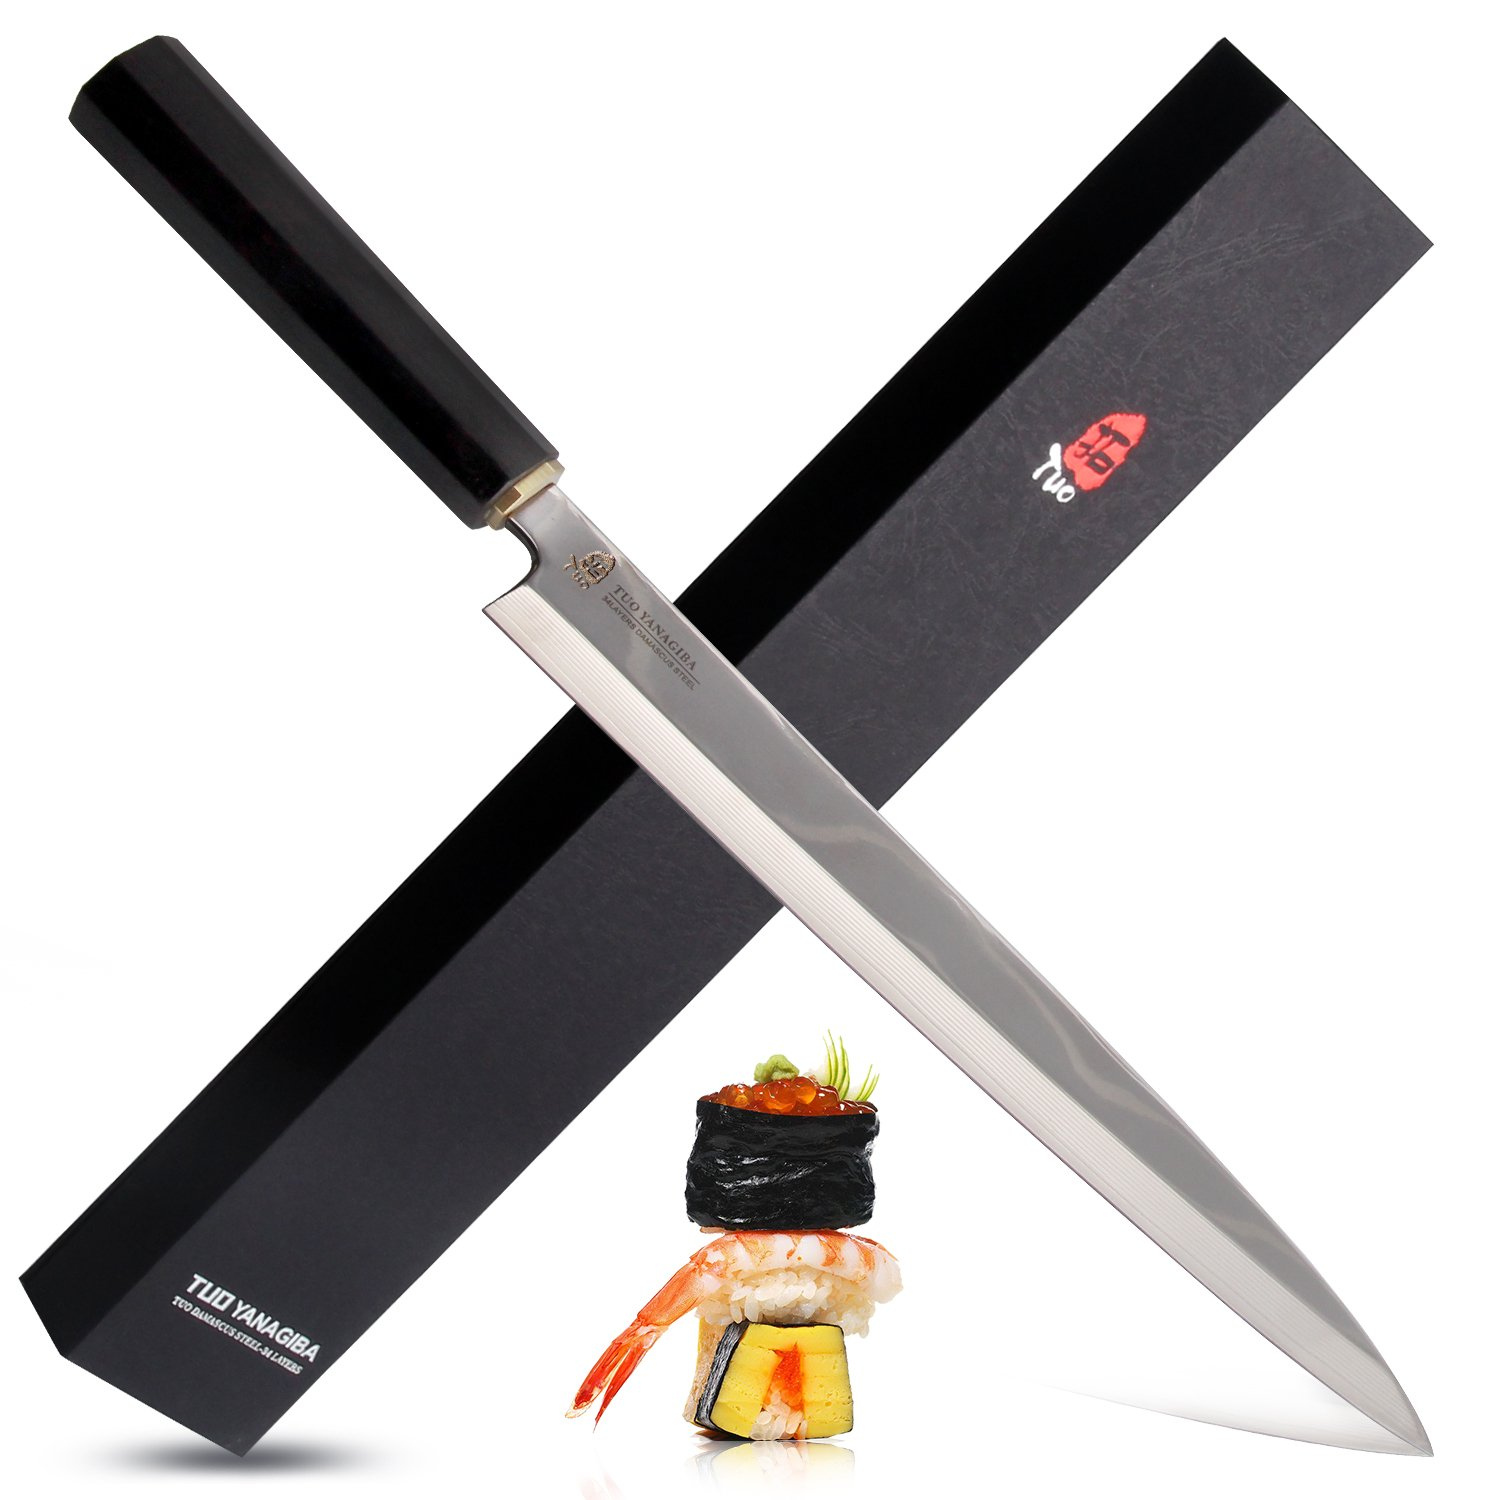 Tuo Cutlery New Damascus Yanagiba 10.5'' 34 Layers High Carbon Stainless Steel and Black Ebony Wood Handle with Case Sushi Knife Yanagi Raw Fish Slicing Knife